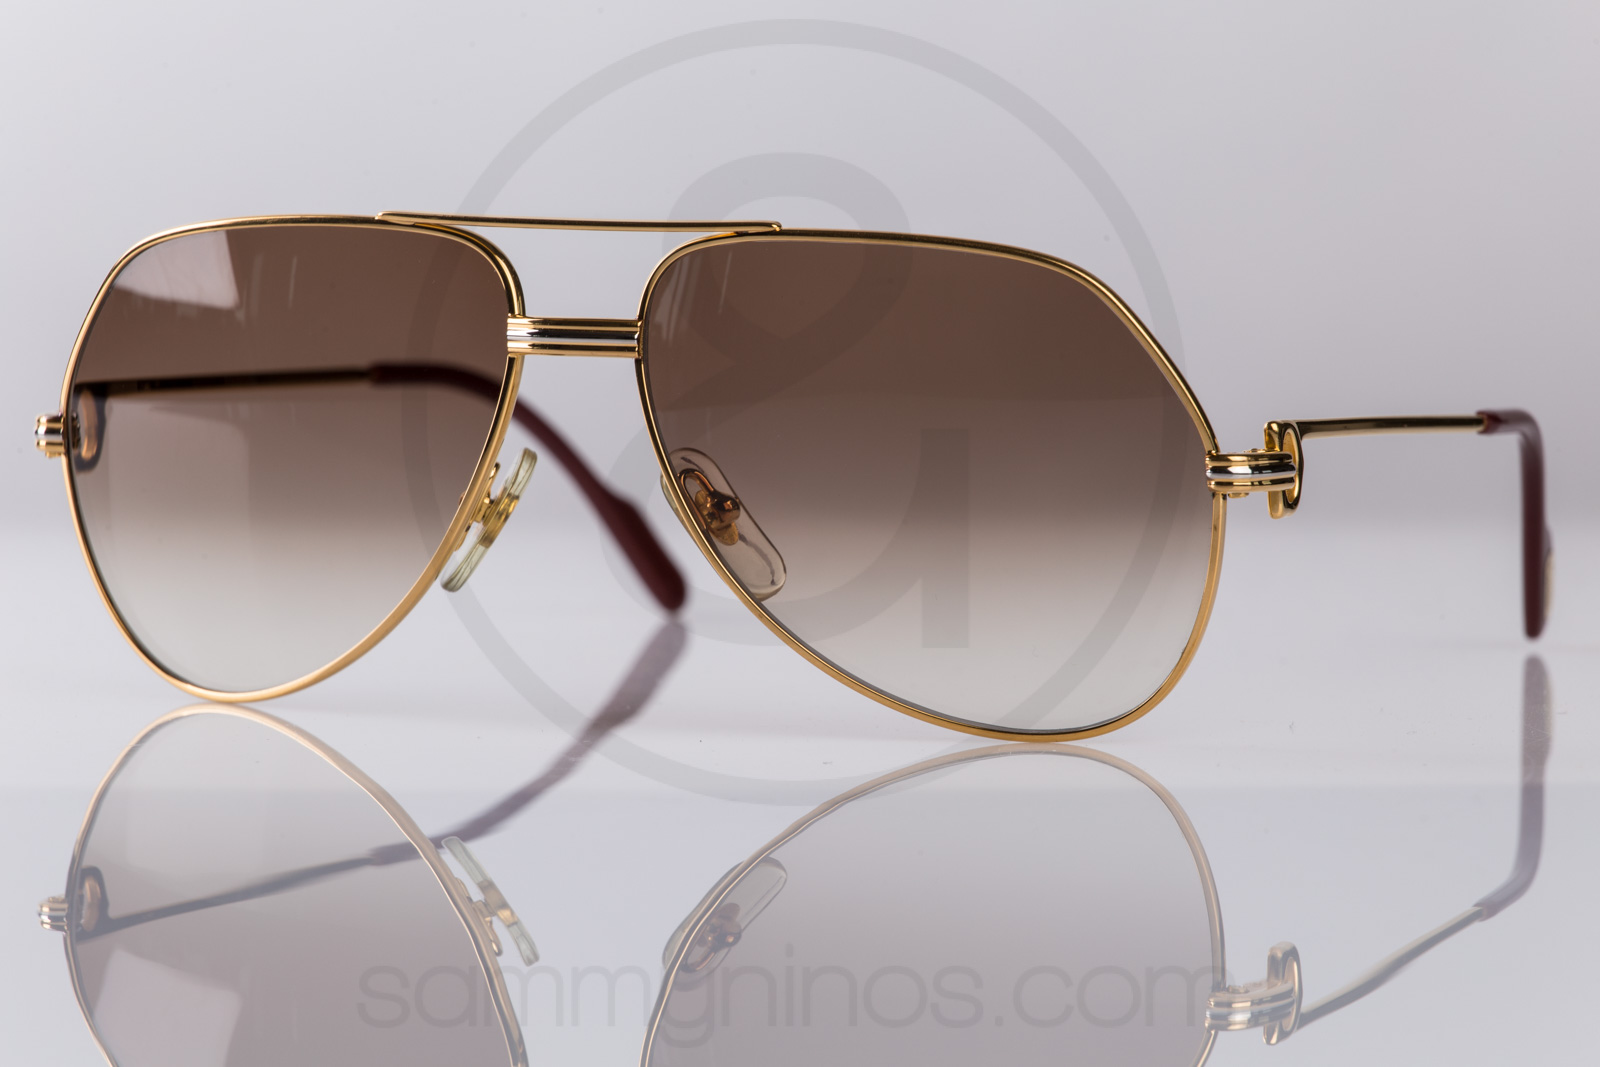 6d48c632d5 Cartier Vendome Louis 59-14 – Sammy & Nino's Store